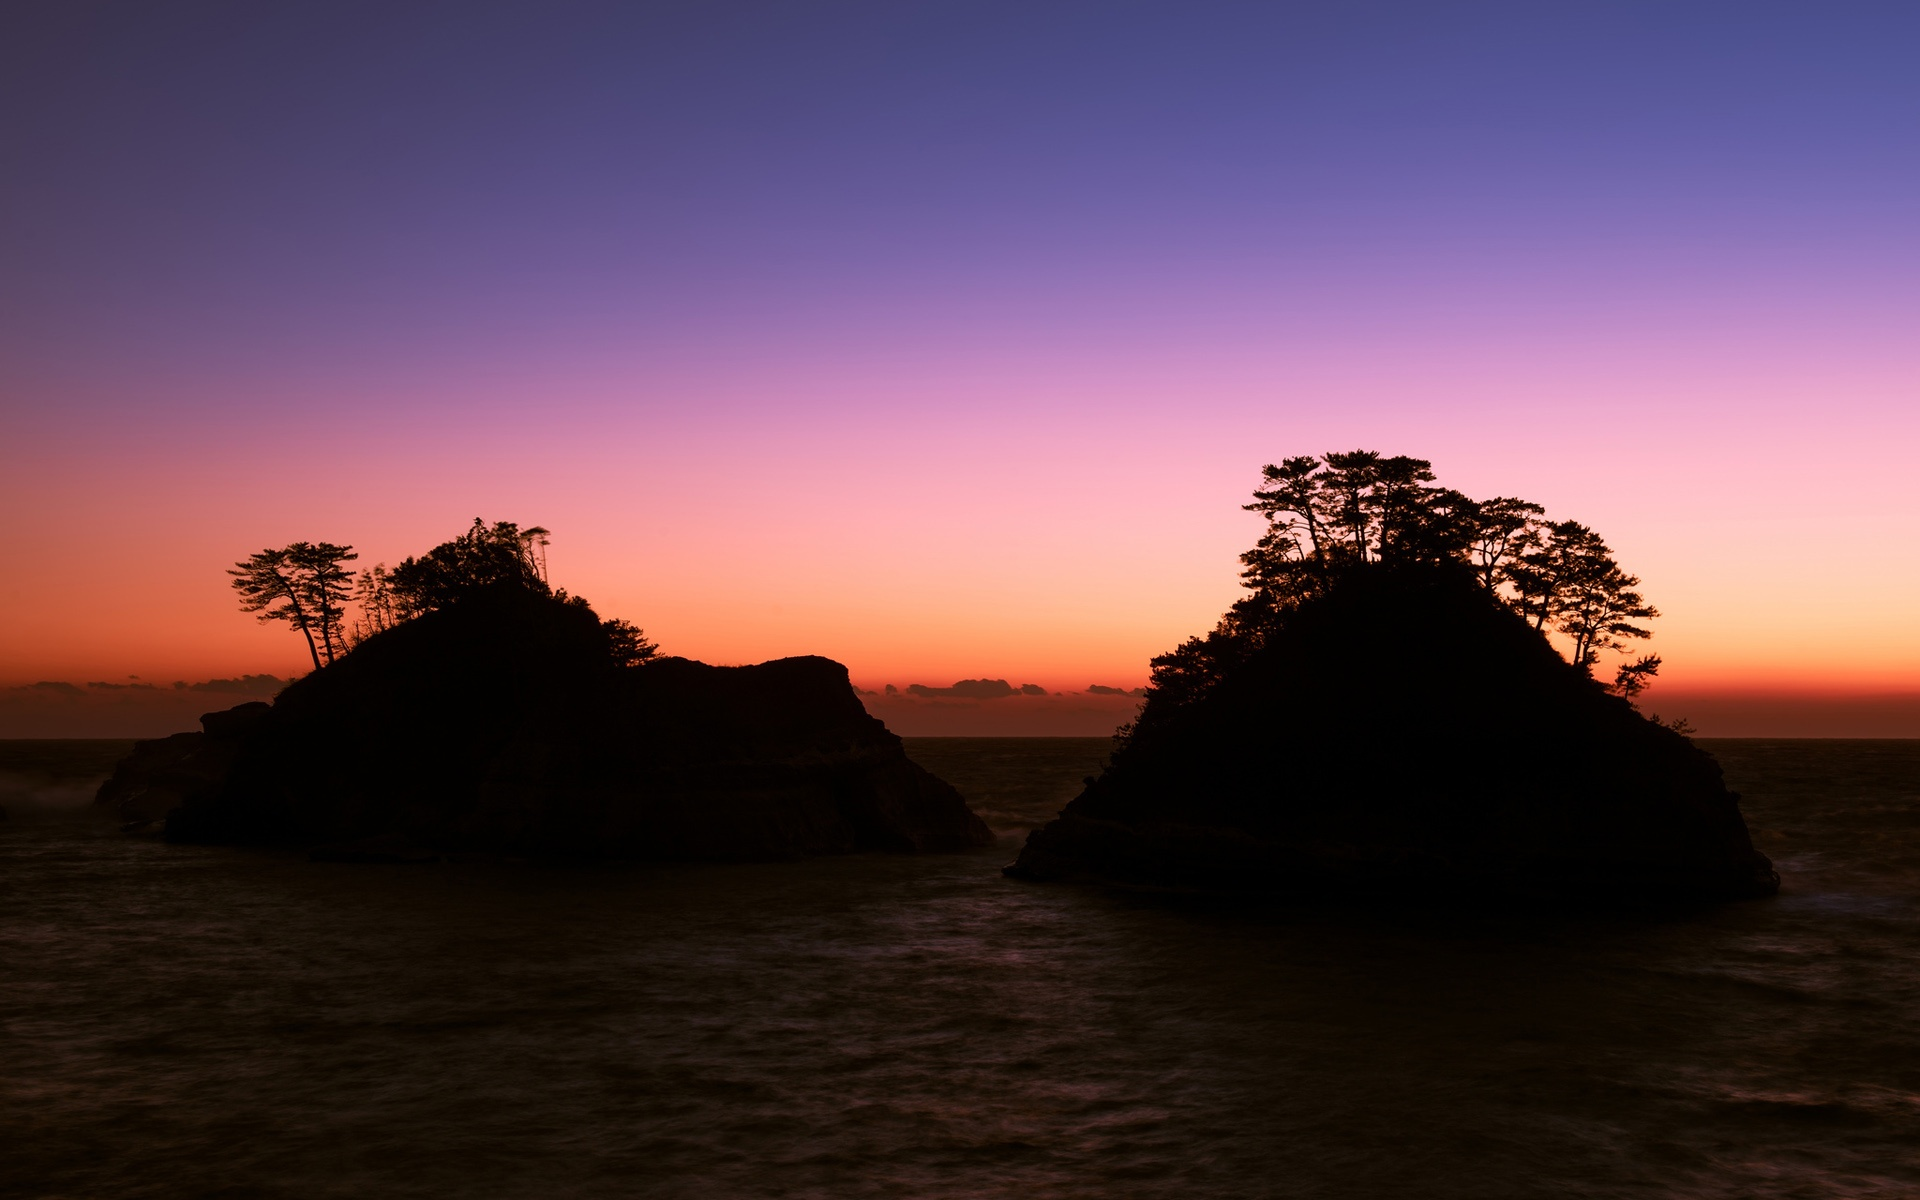 Wallpaper Japan Shizuoka Prefecture Sea Rocks Trees Evening Sunset Purple Sky 1920x1200 Hd Picture Image